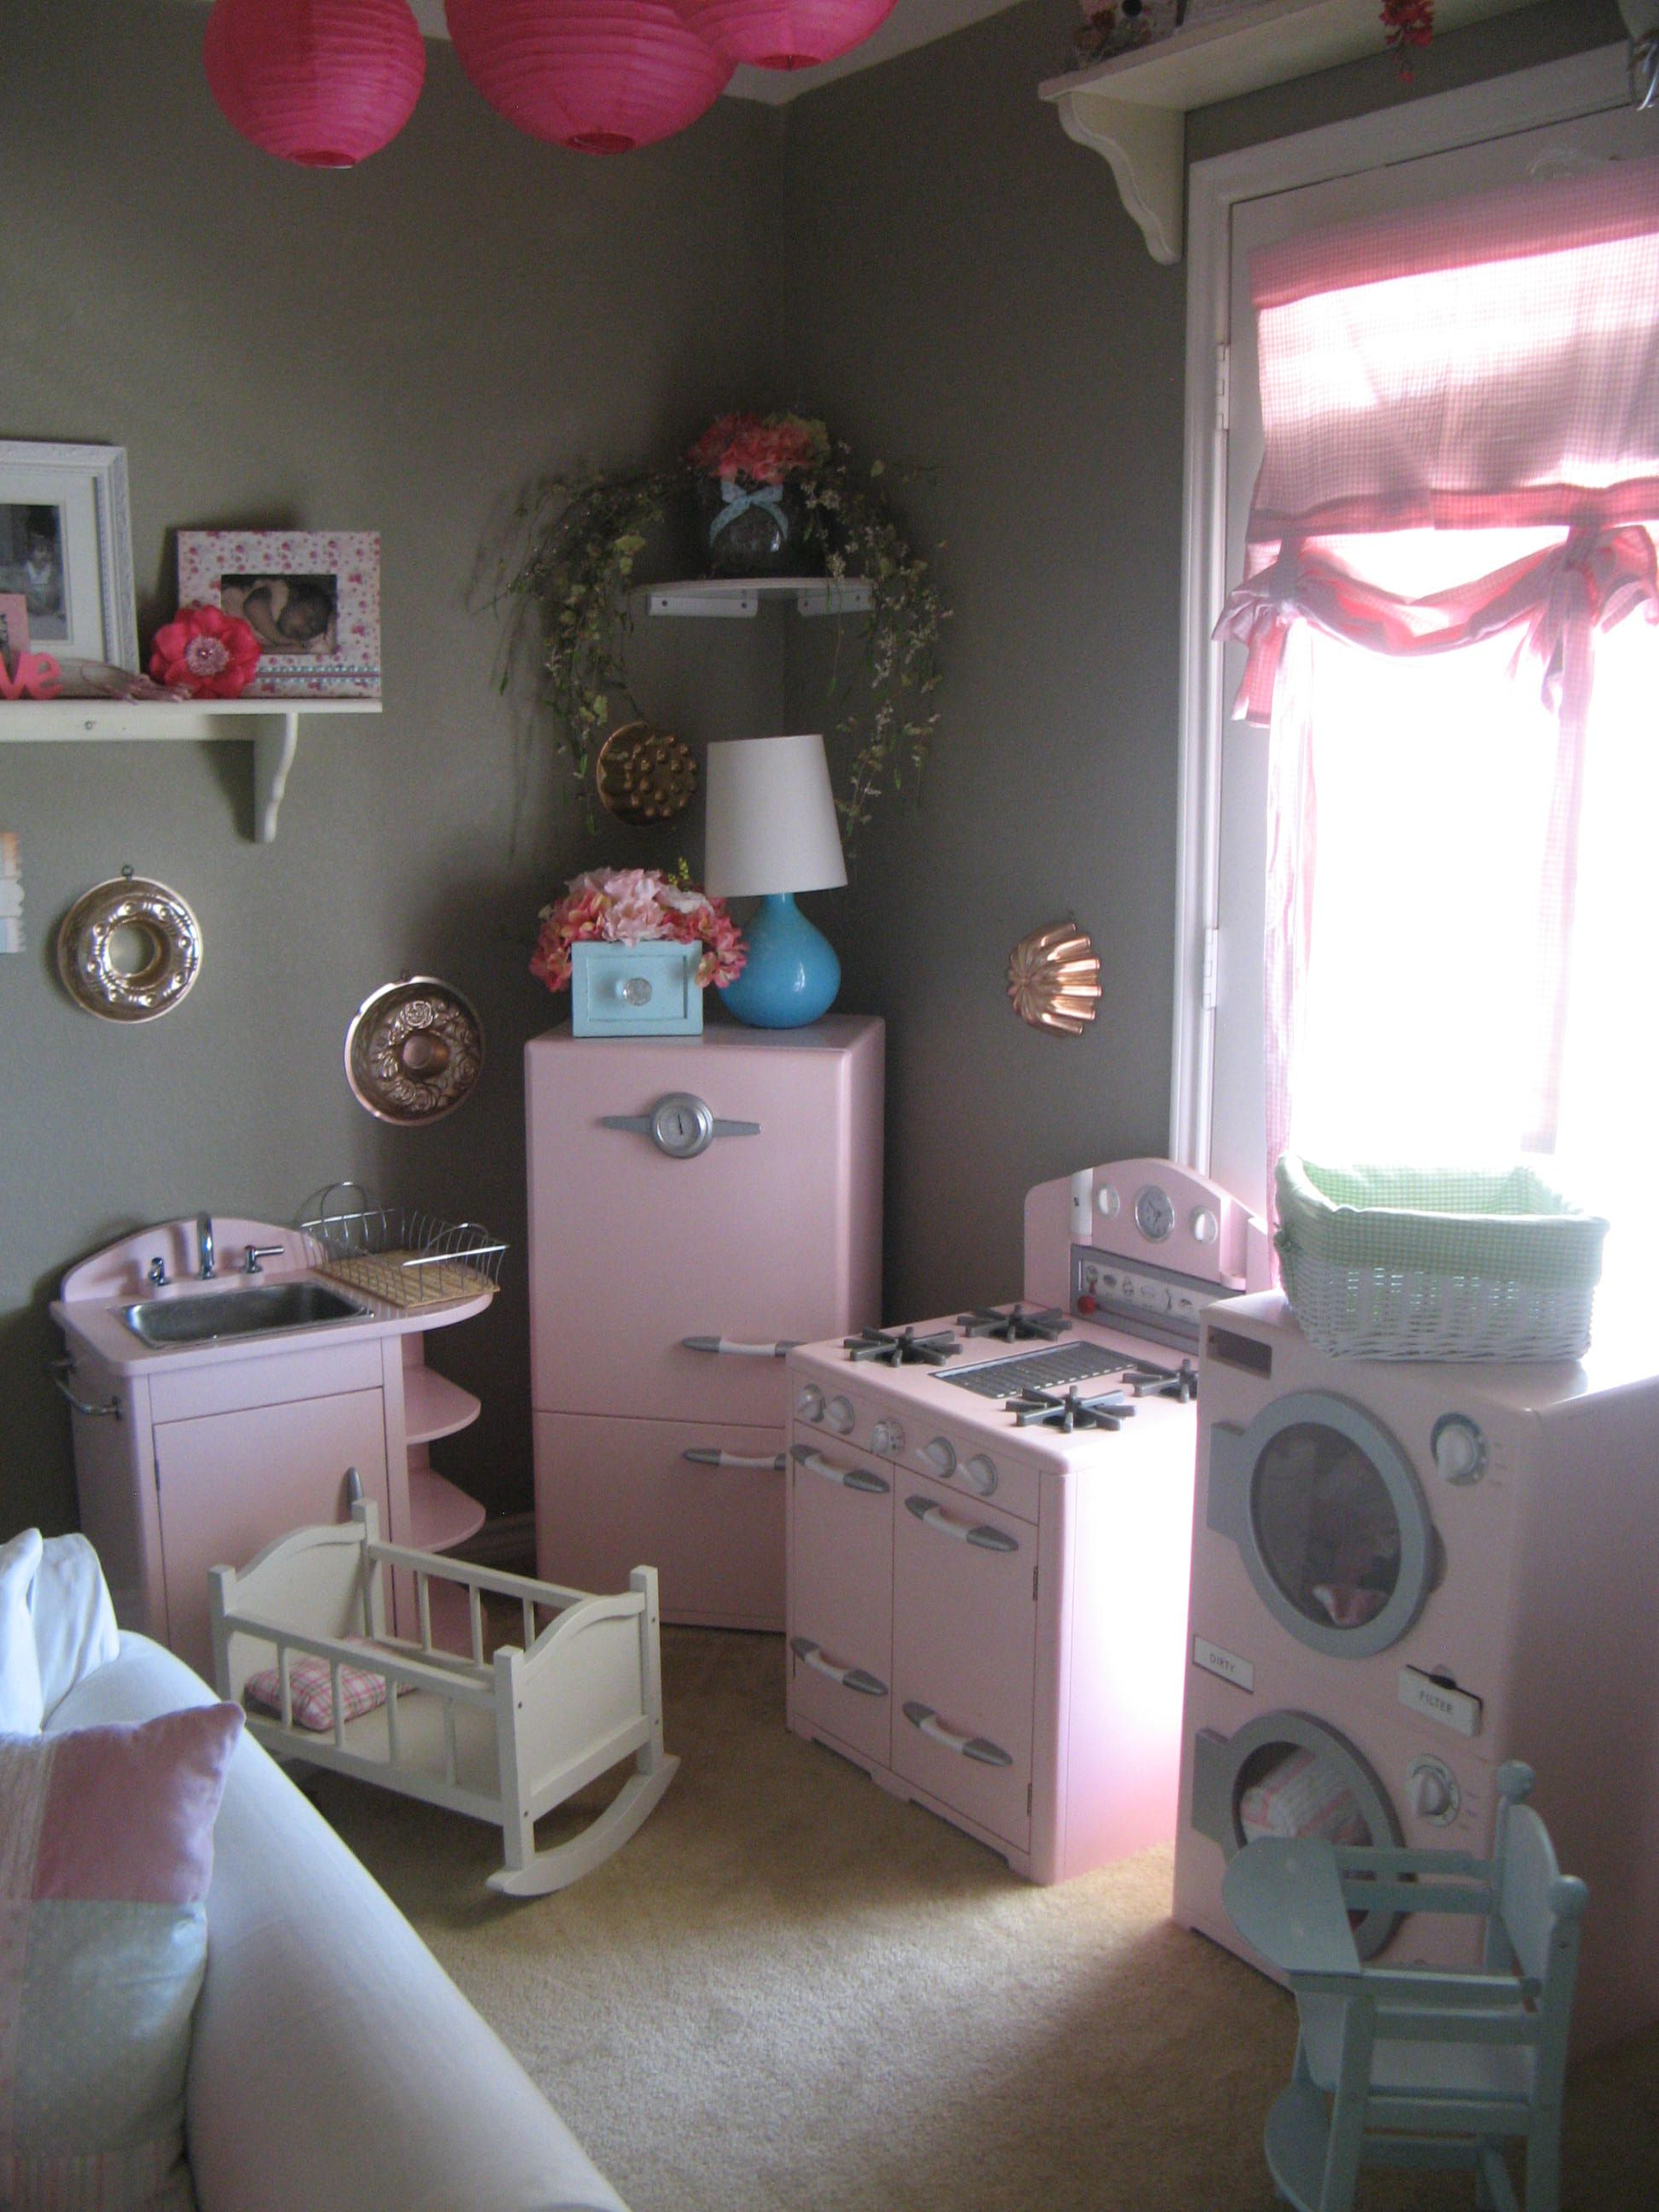 Pretend play area Pottery Barn Kids pink retro kitchen set I found